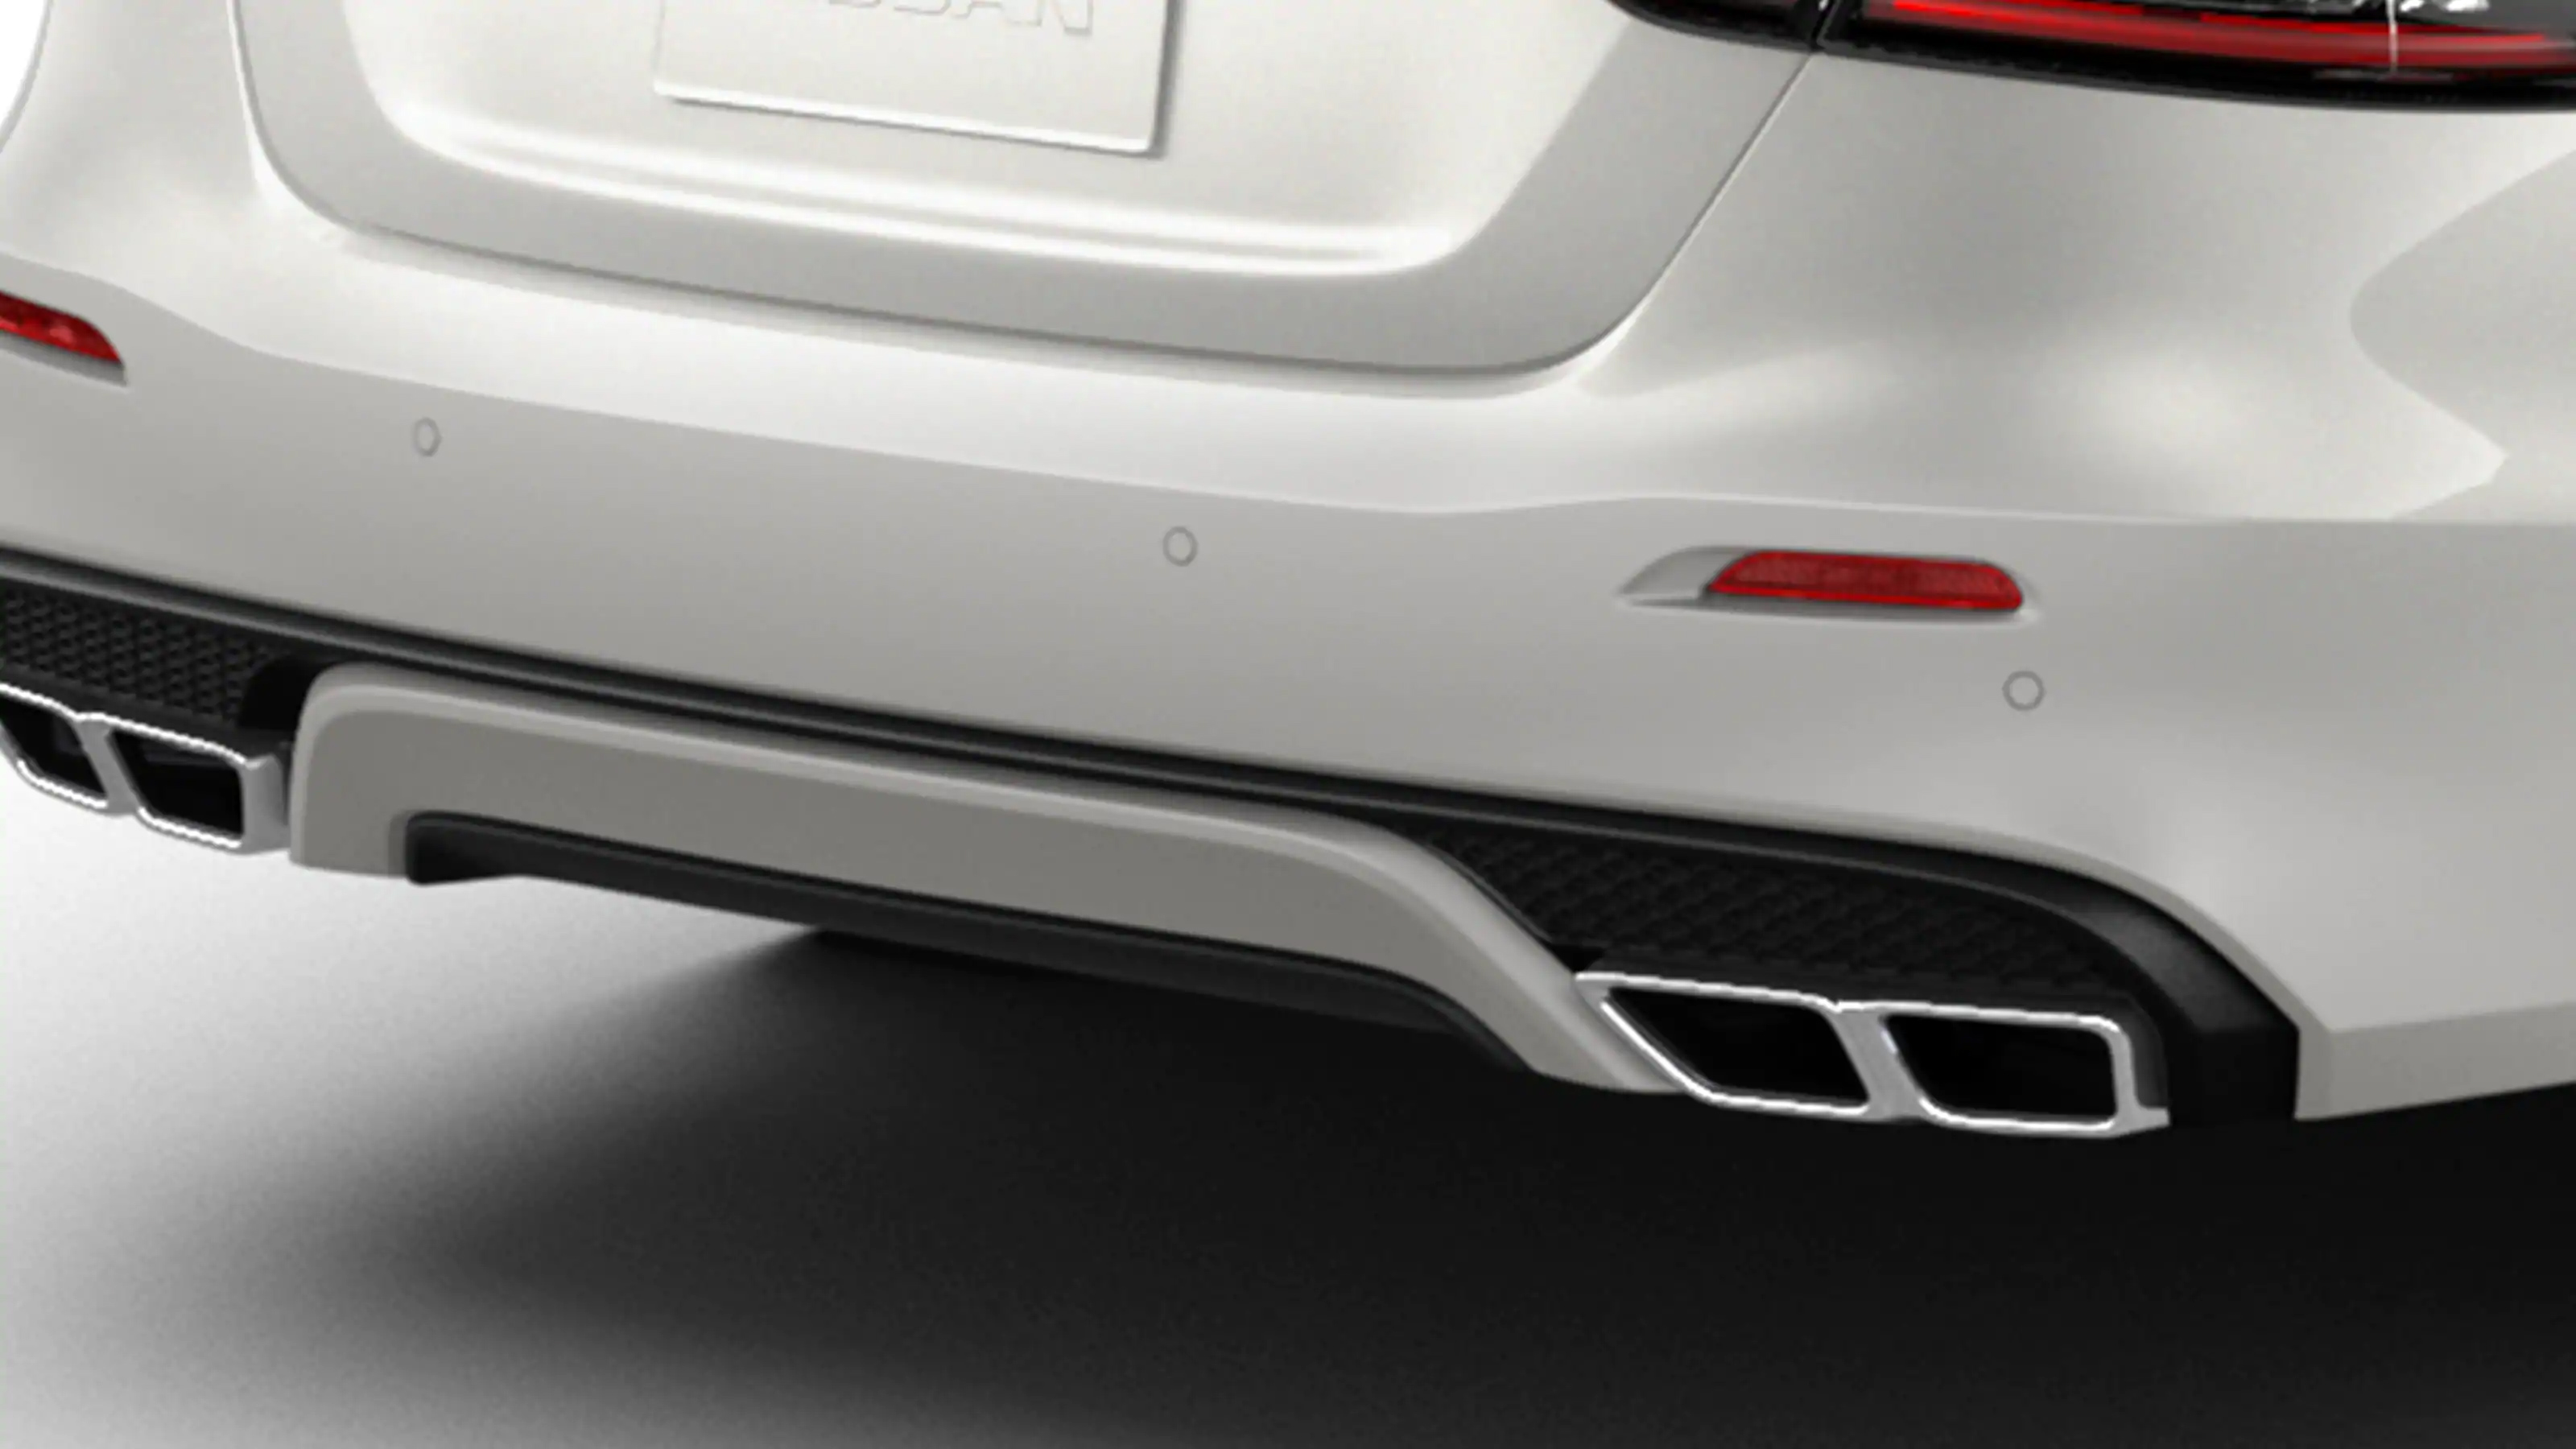 Nissan Maxima quad-tip exhaust finishers